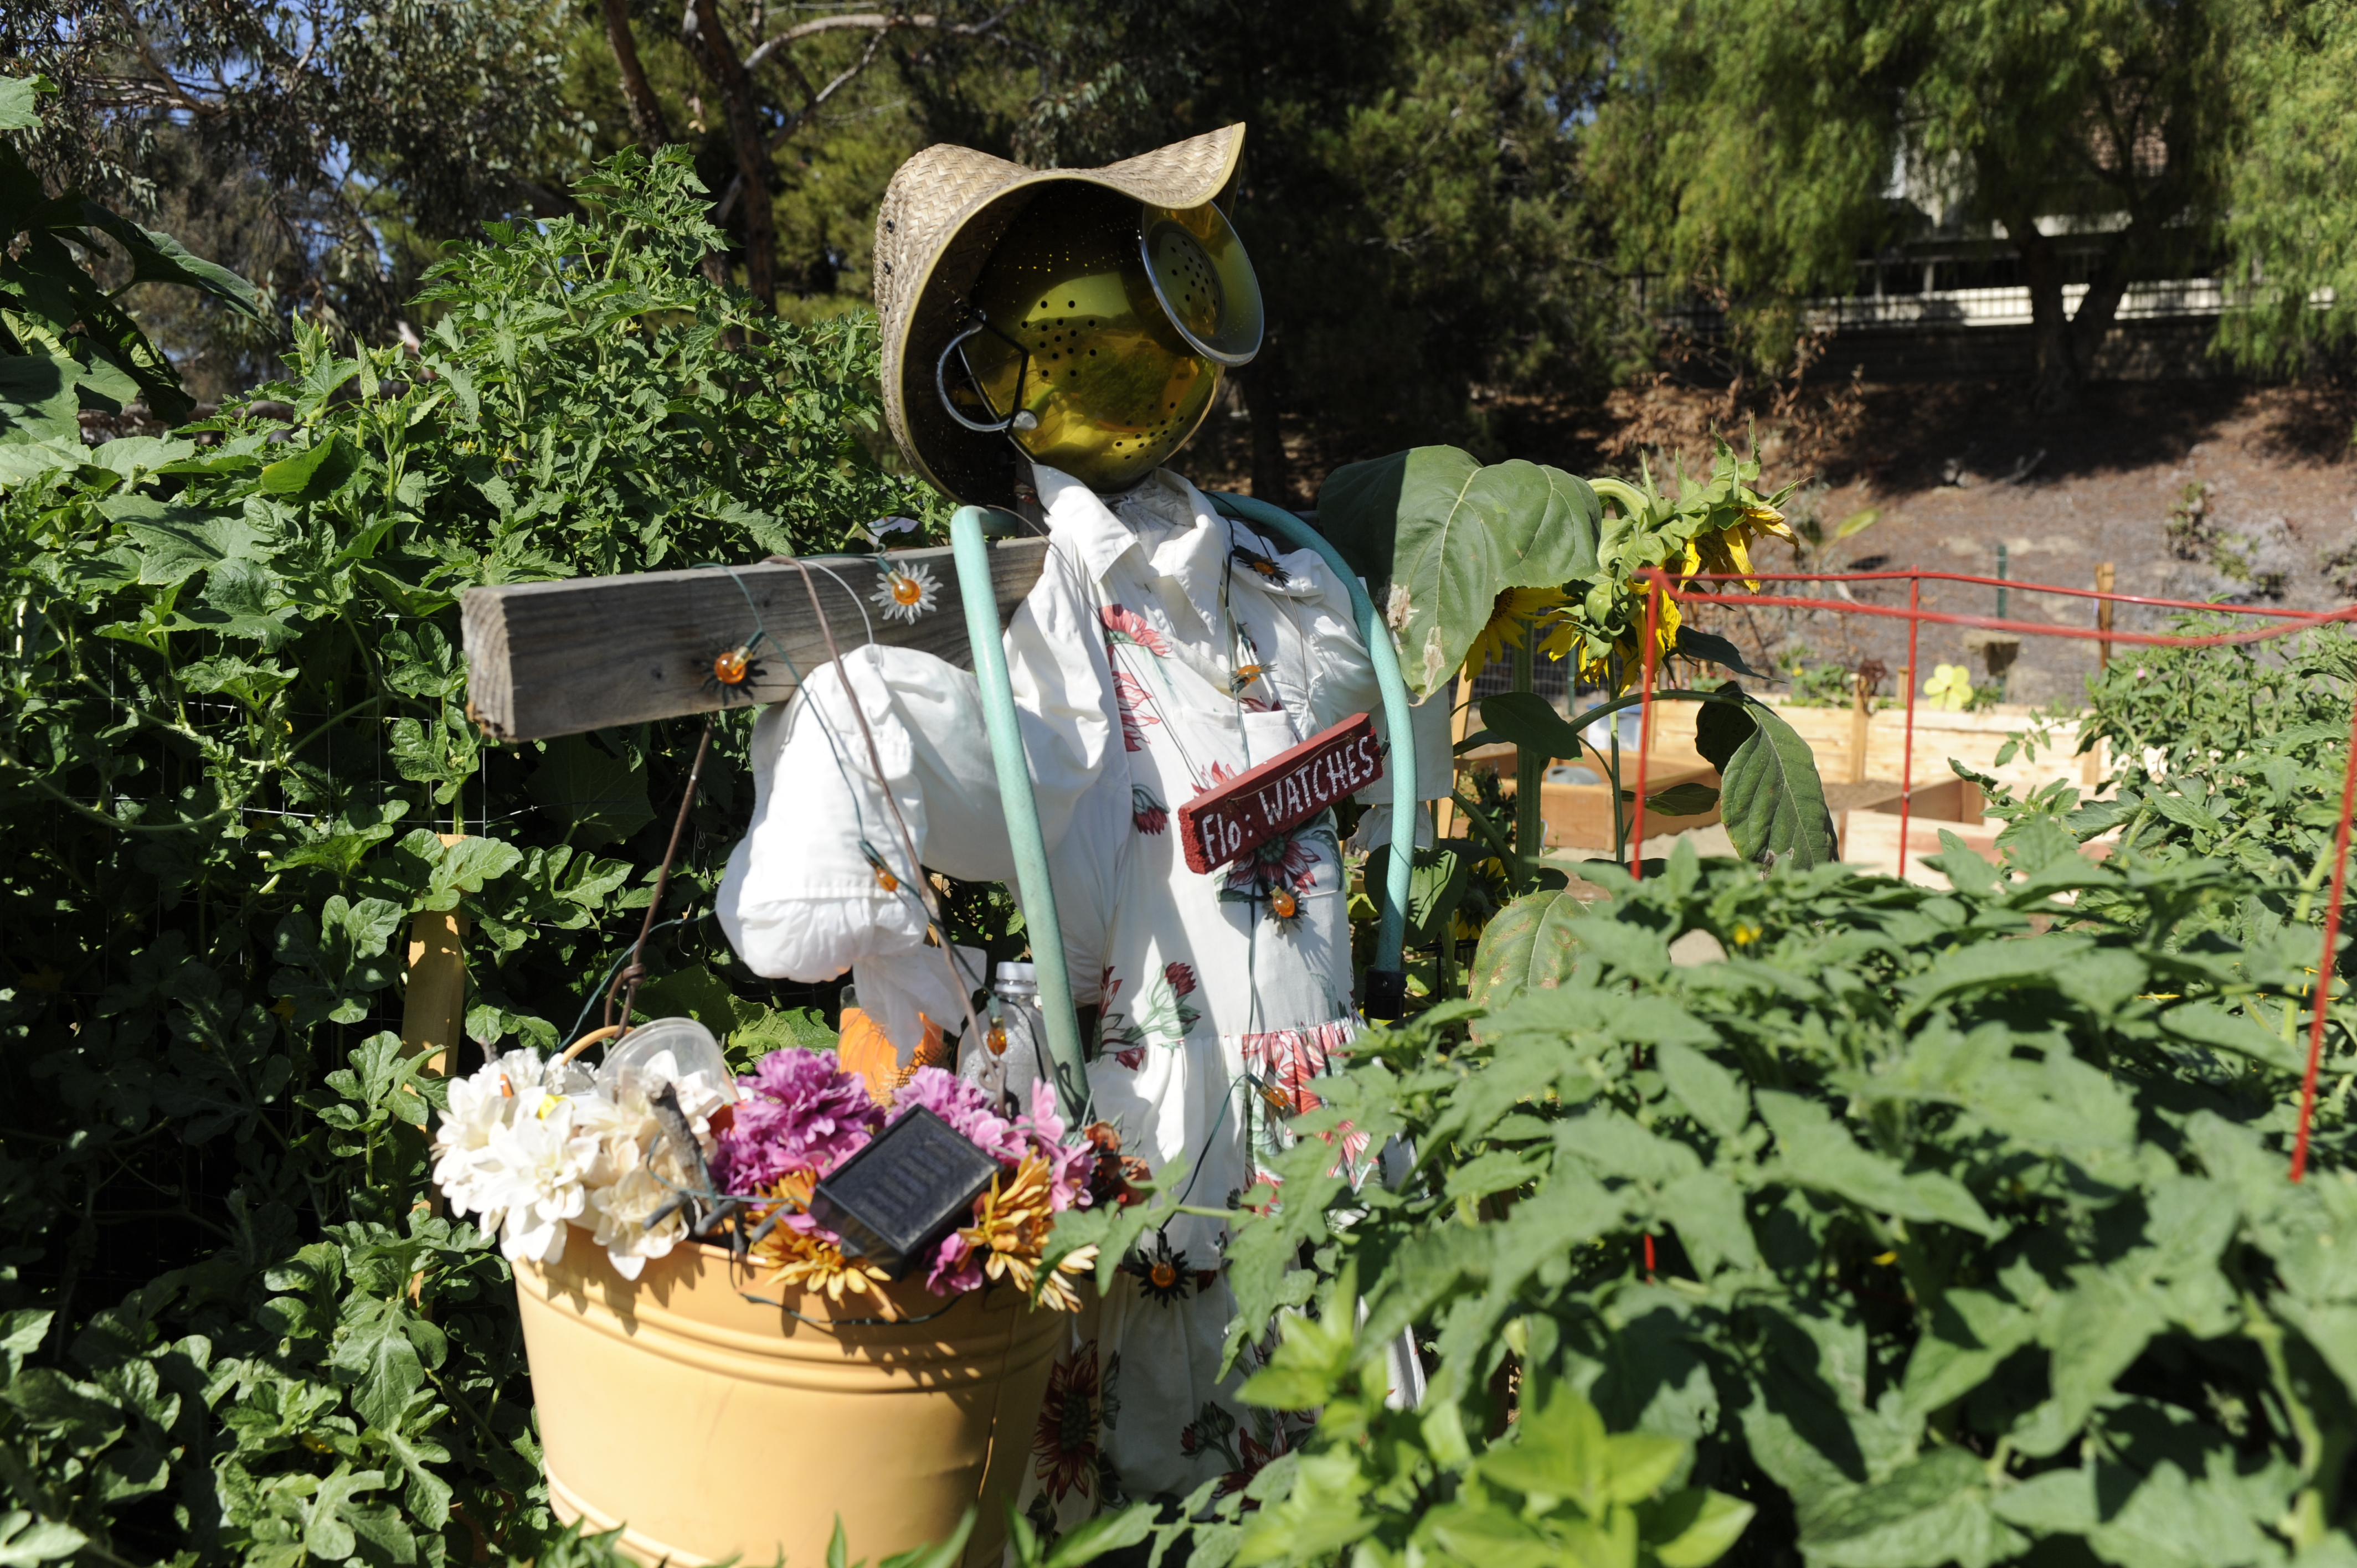 Large scarecrow in the middle of the garden plot